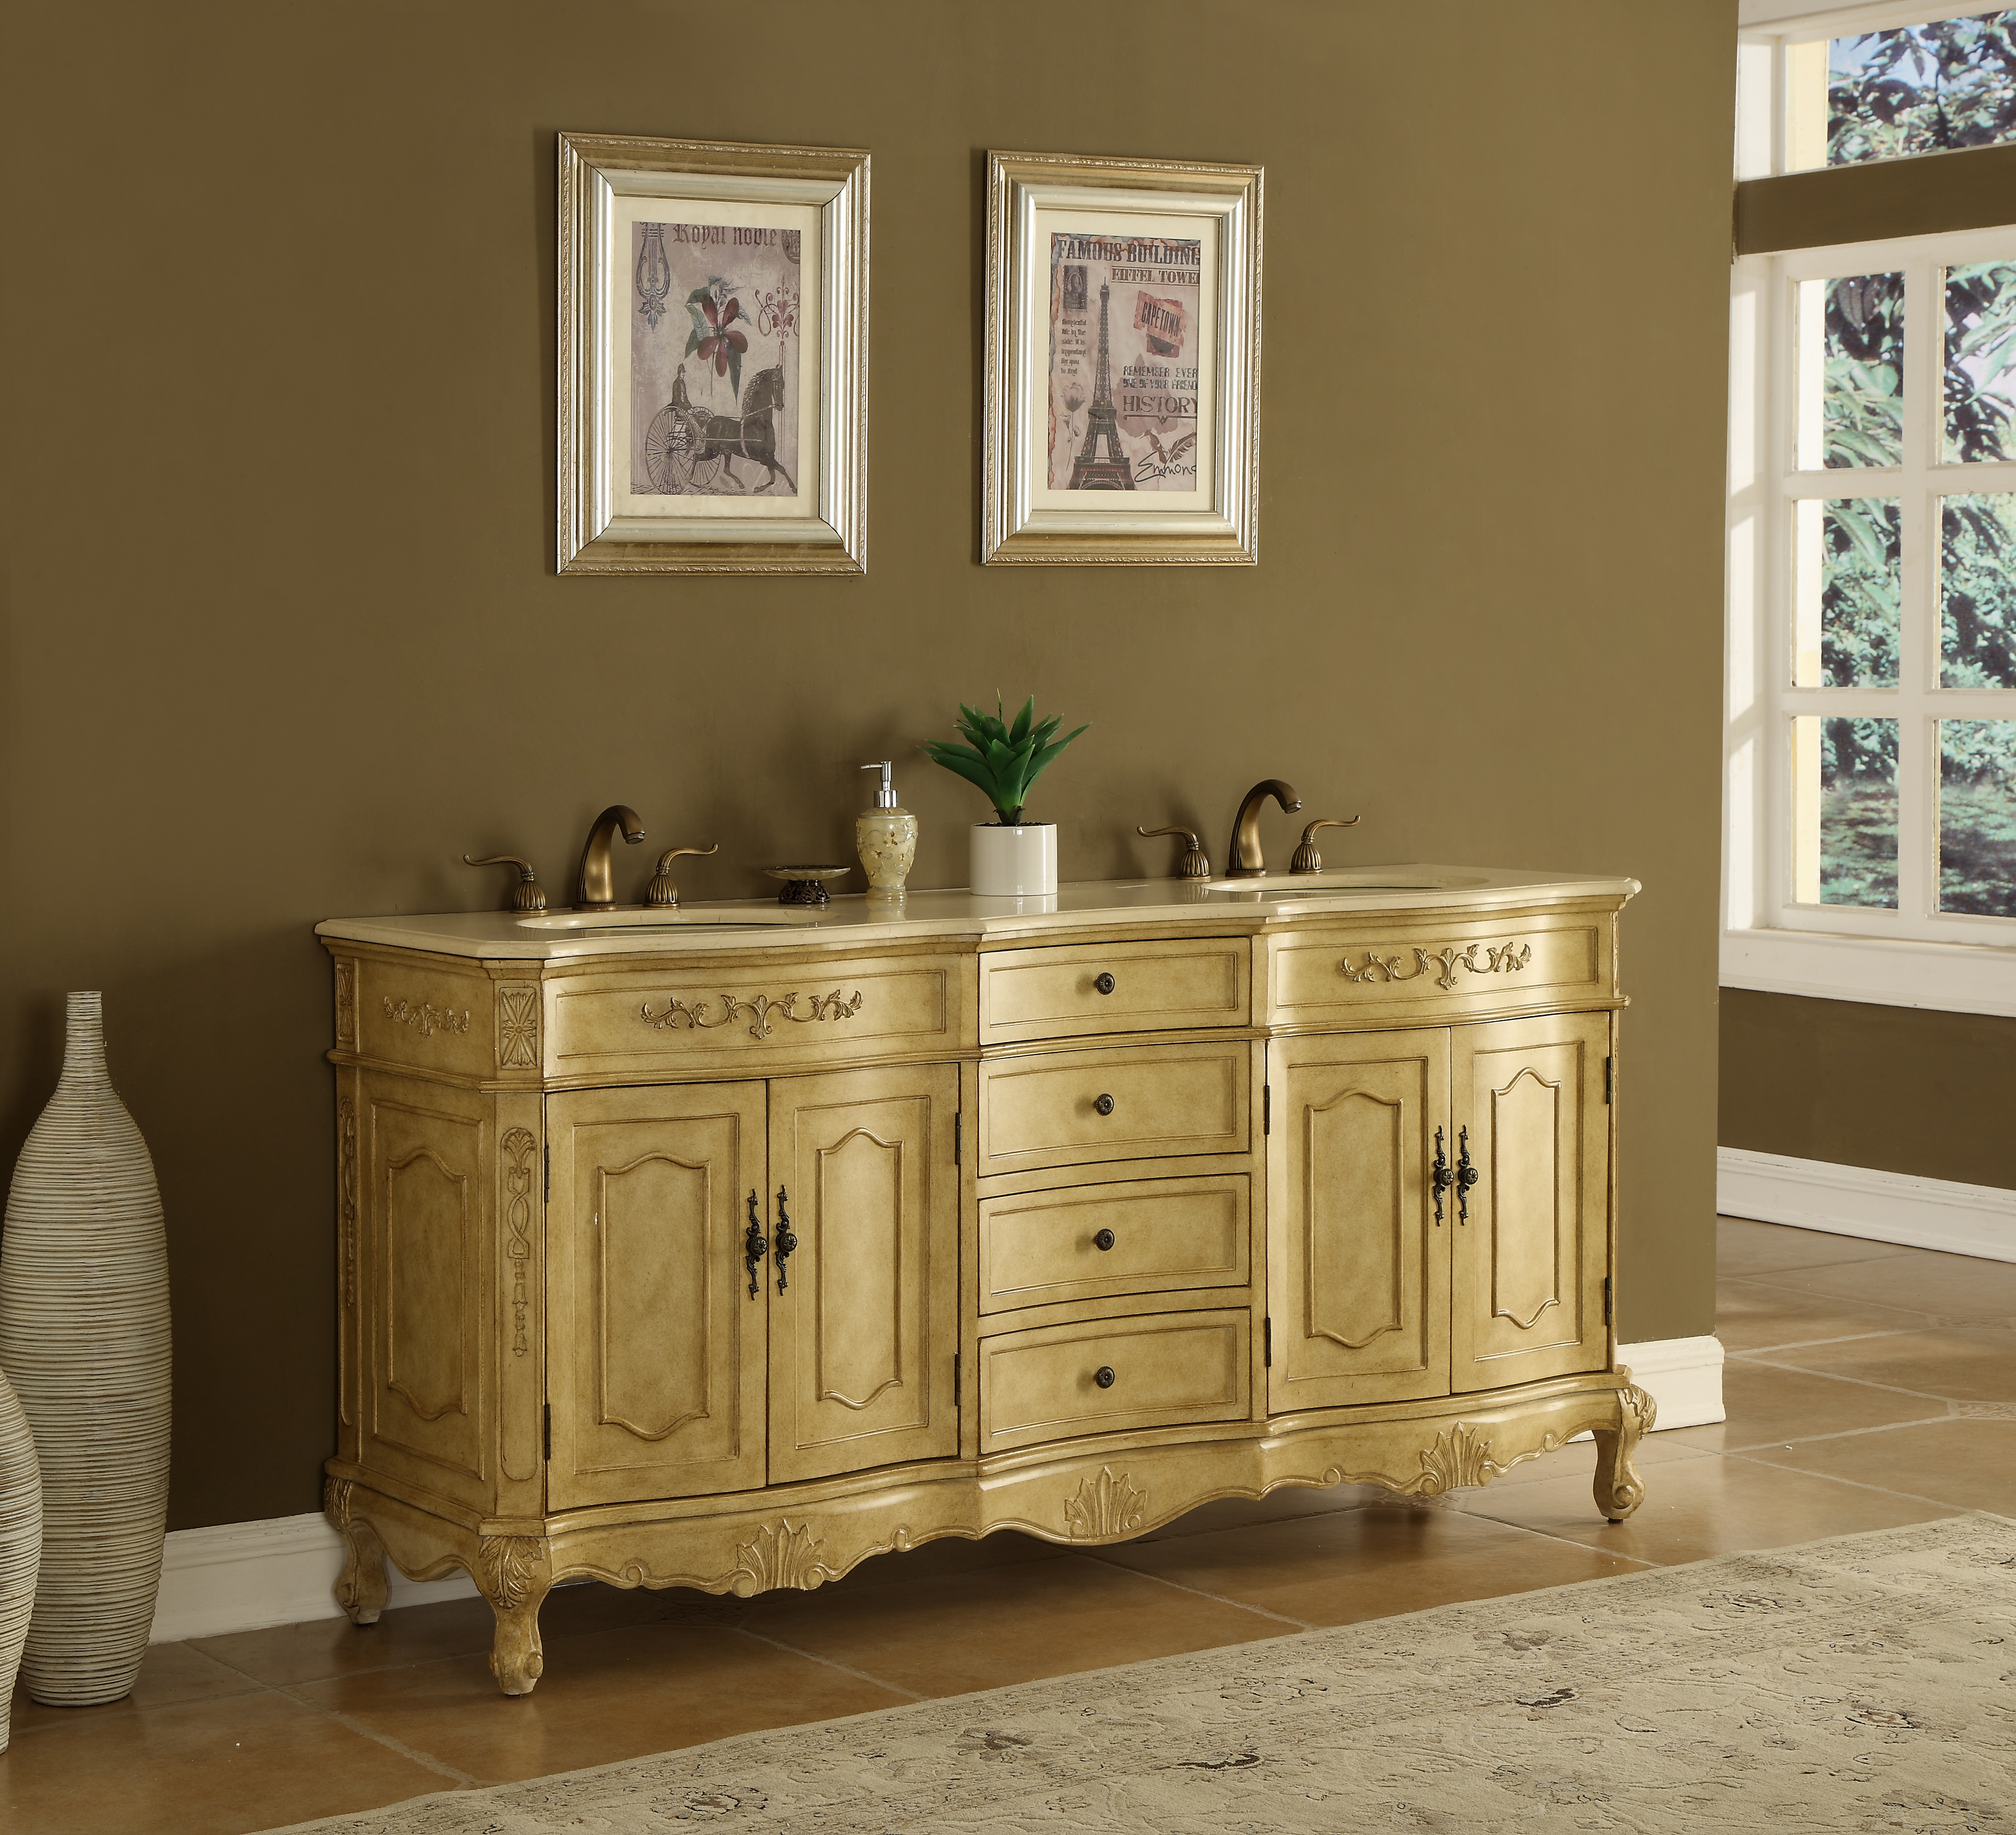 """72"""" Antique Tan Finish Vanity with Mirror, Med Cab, and Linen Cabinet Options"""